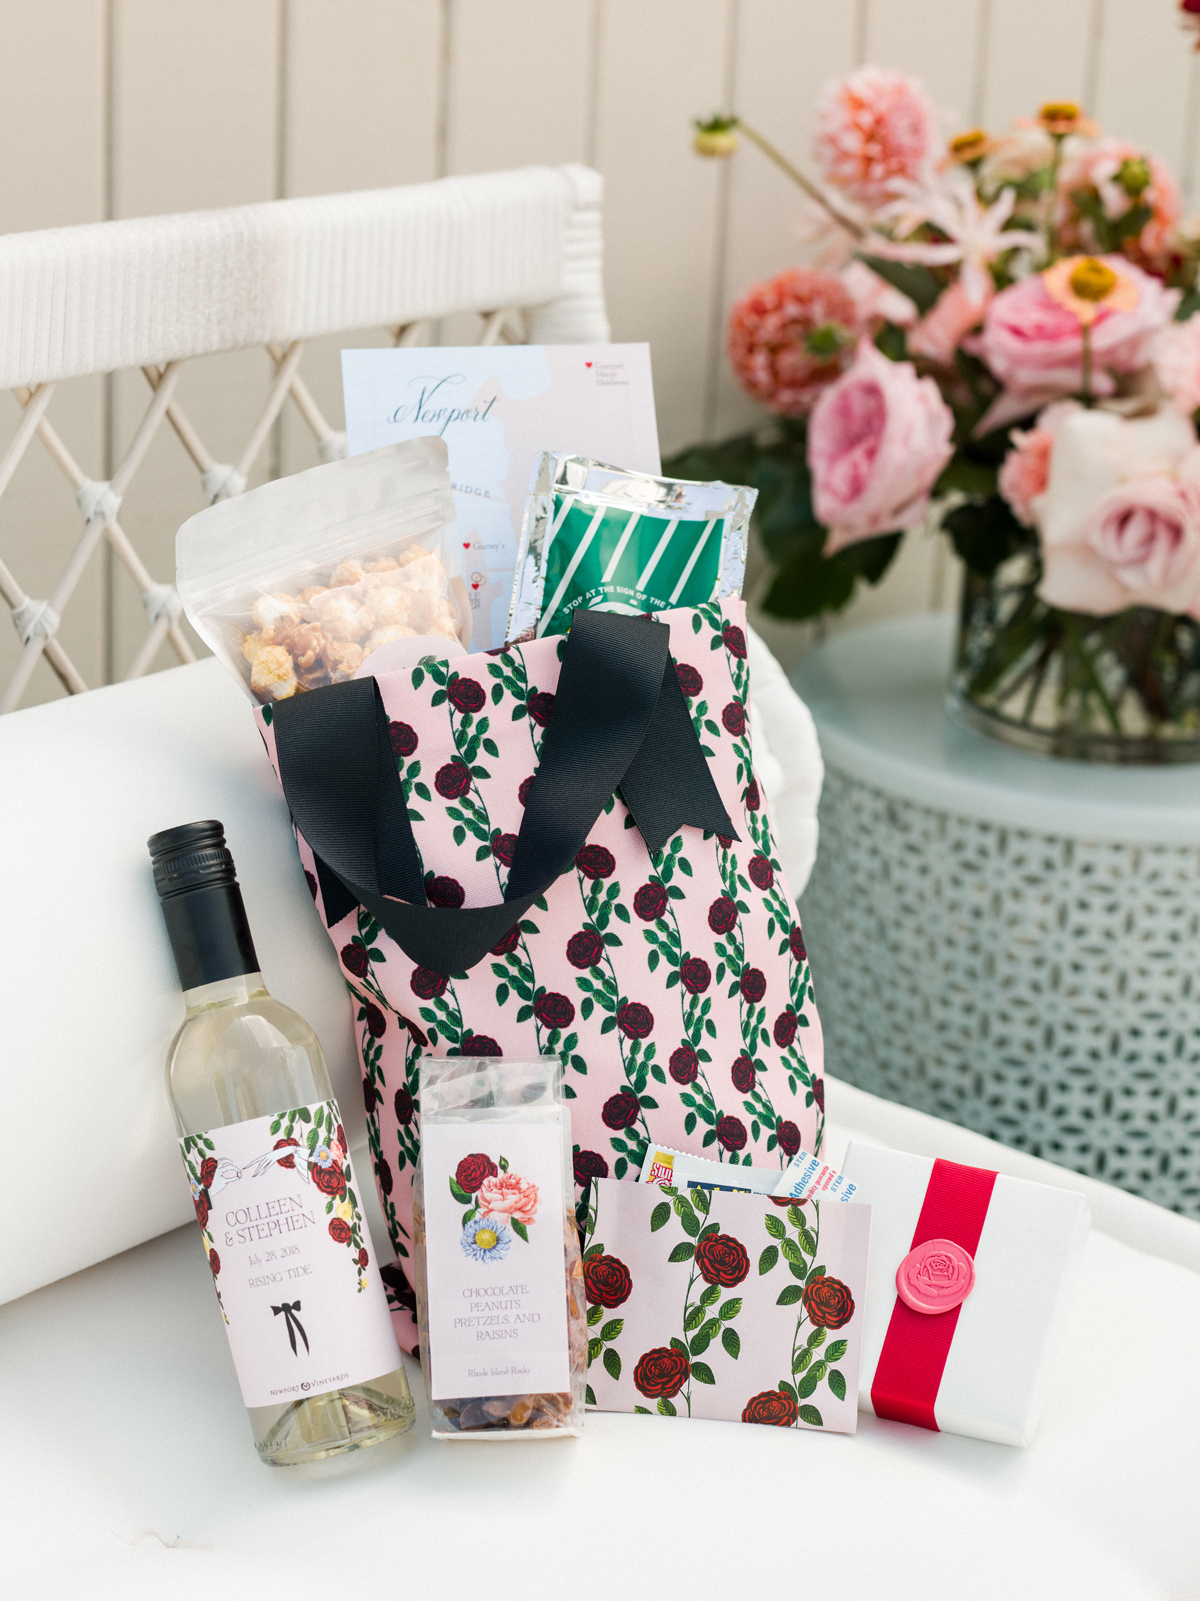 colleen stephen newport wedding floral welcome bag with wine